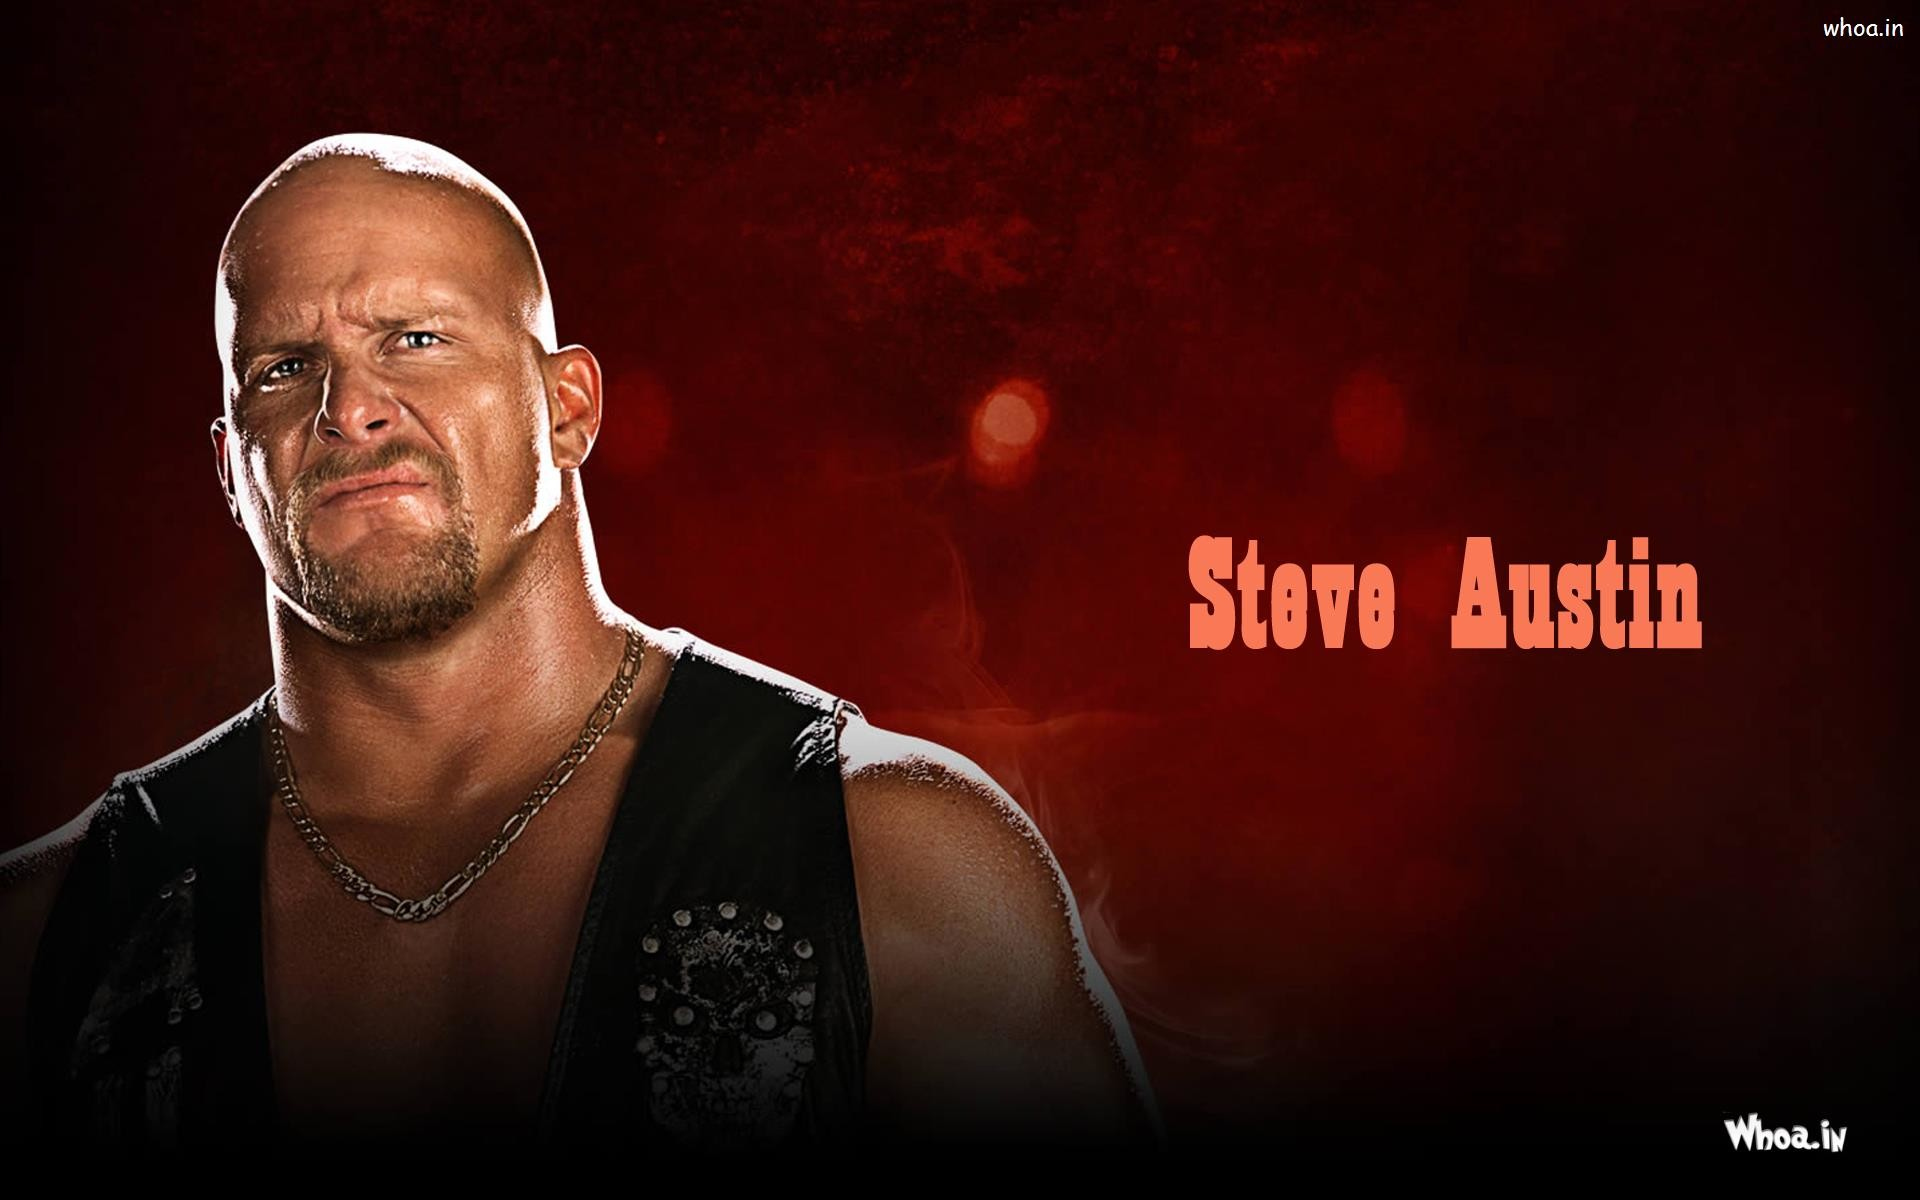 stone-cold-steve-austin-hd-images-8 | Stone Cold Steve Austin HD Images |  Pinterest | Stone cold steve, Steve austin and Hd images